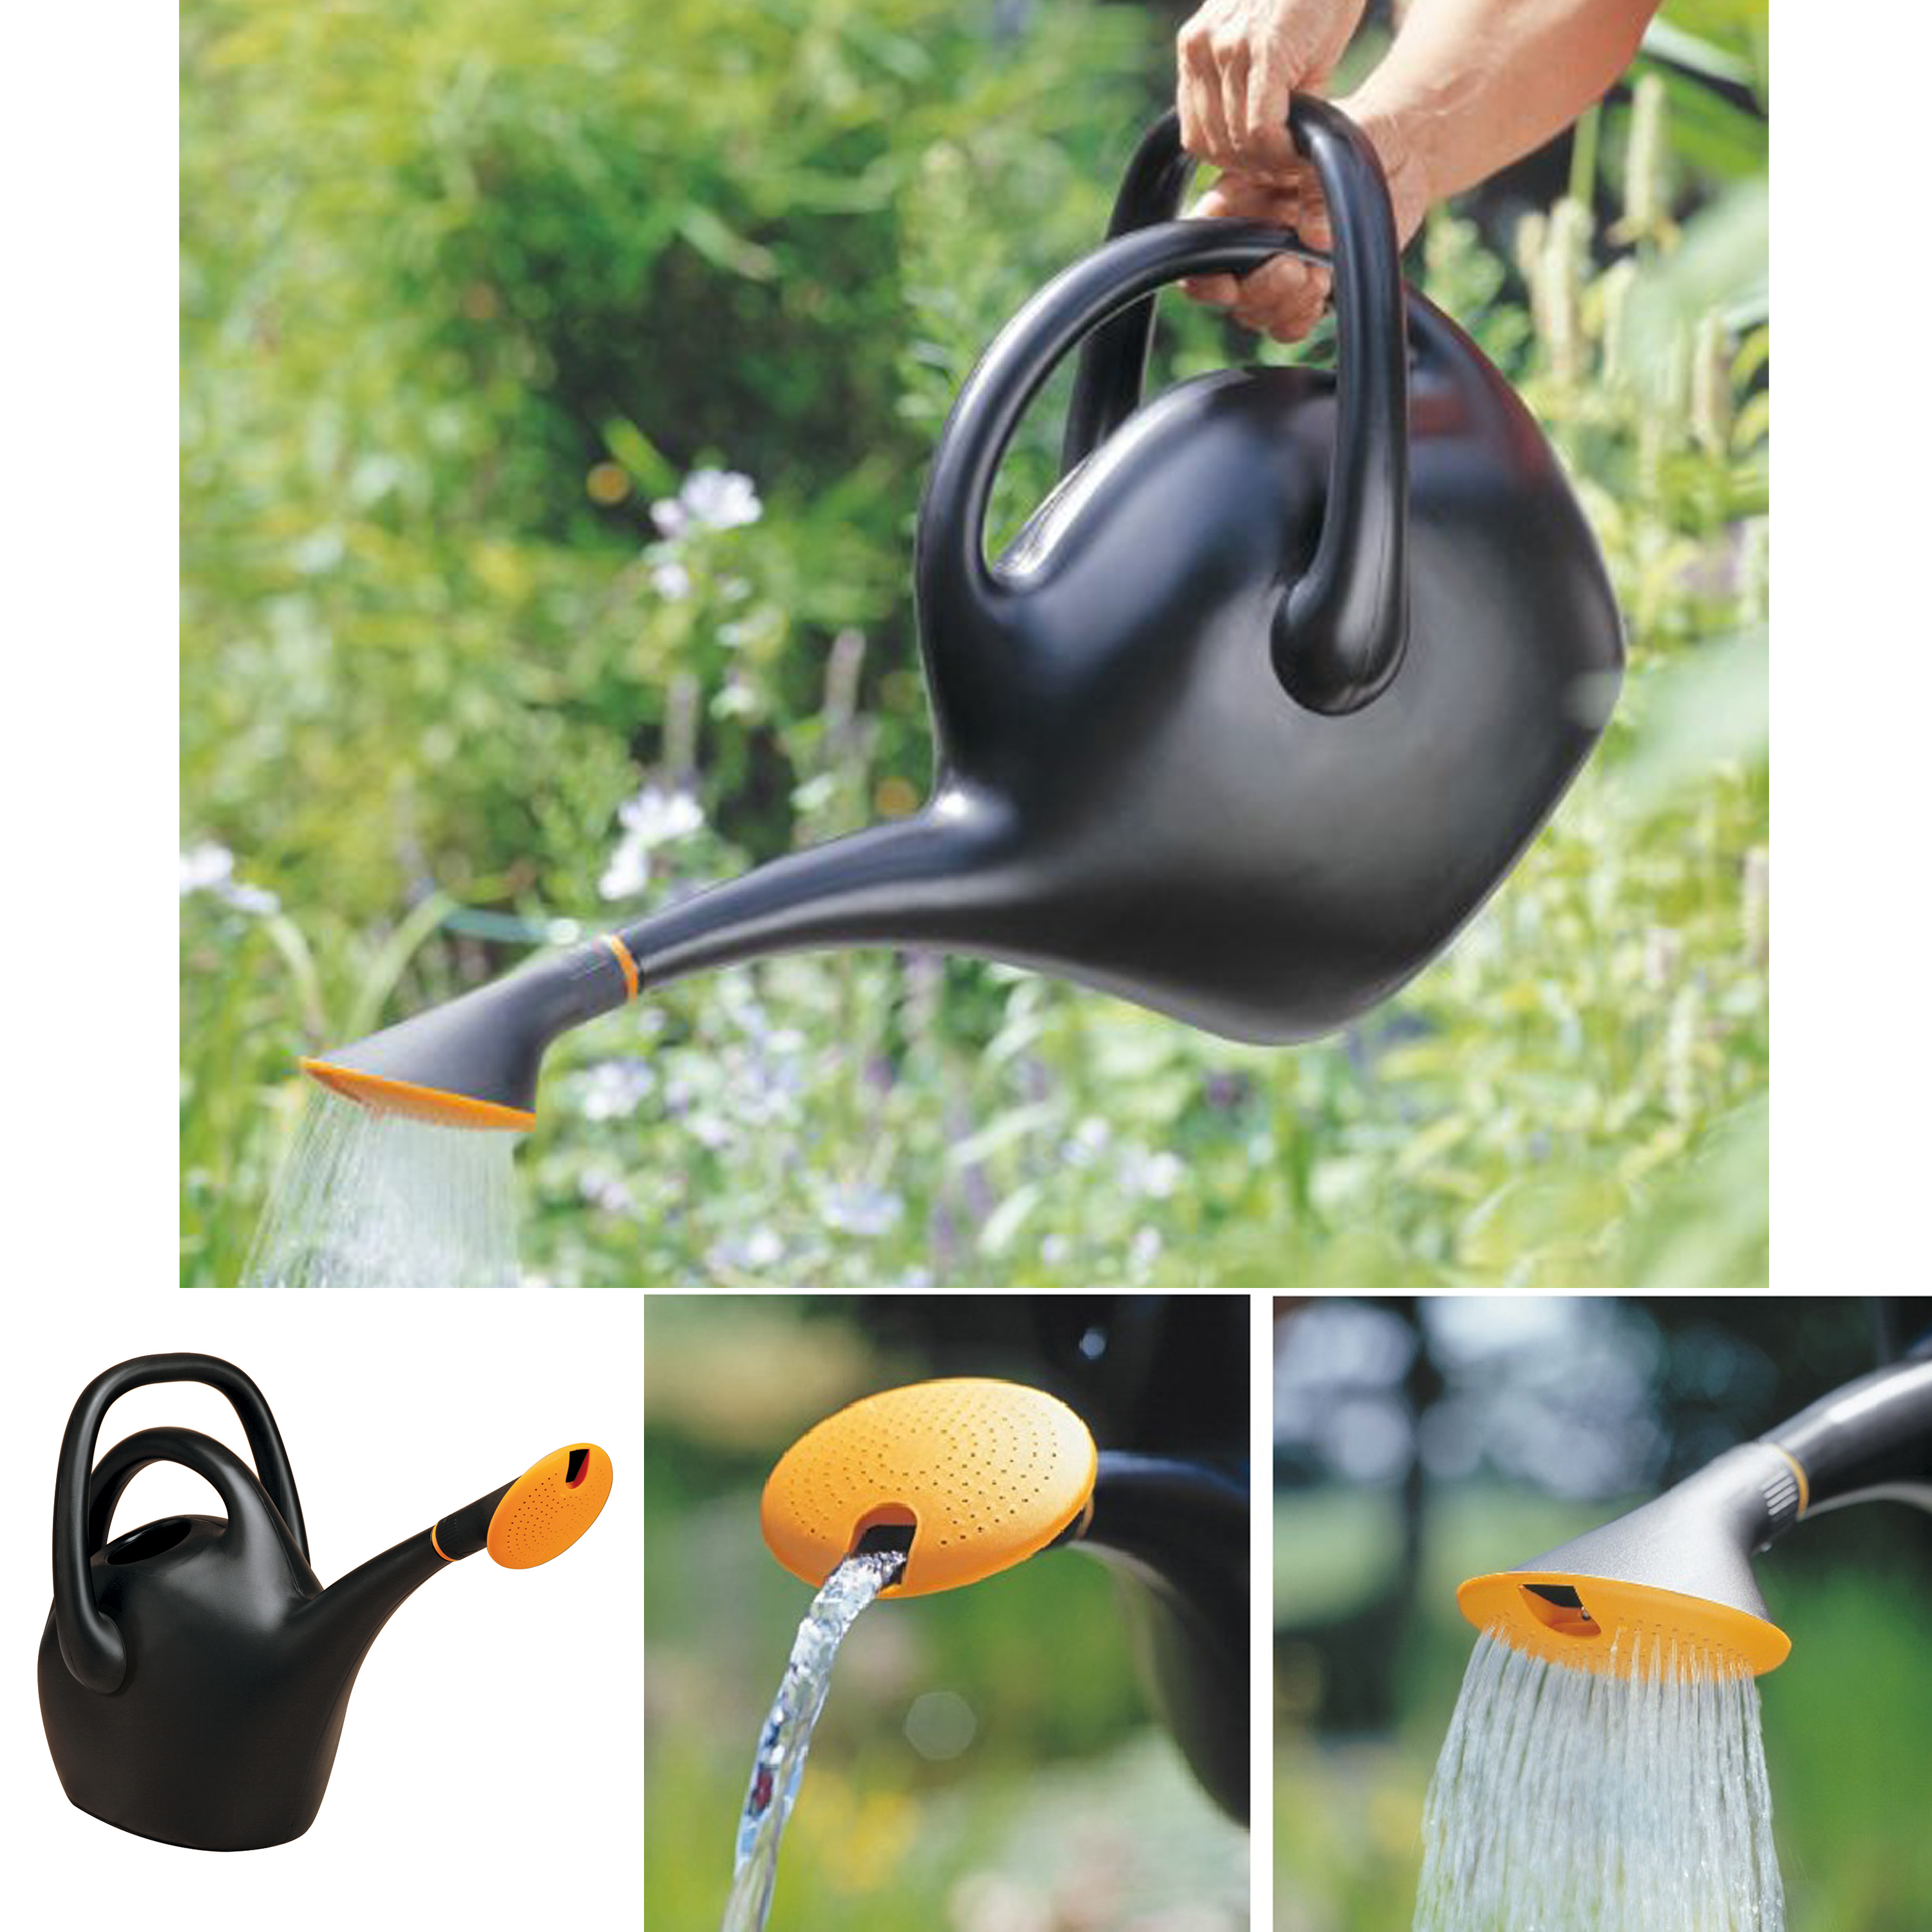 Bloem Easy Pour Watering Can 2.6 Gallon Black